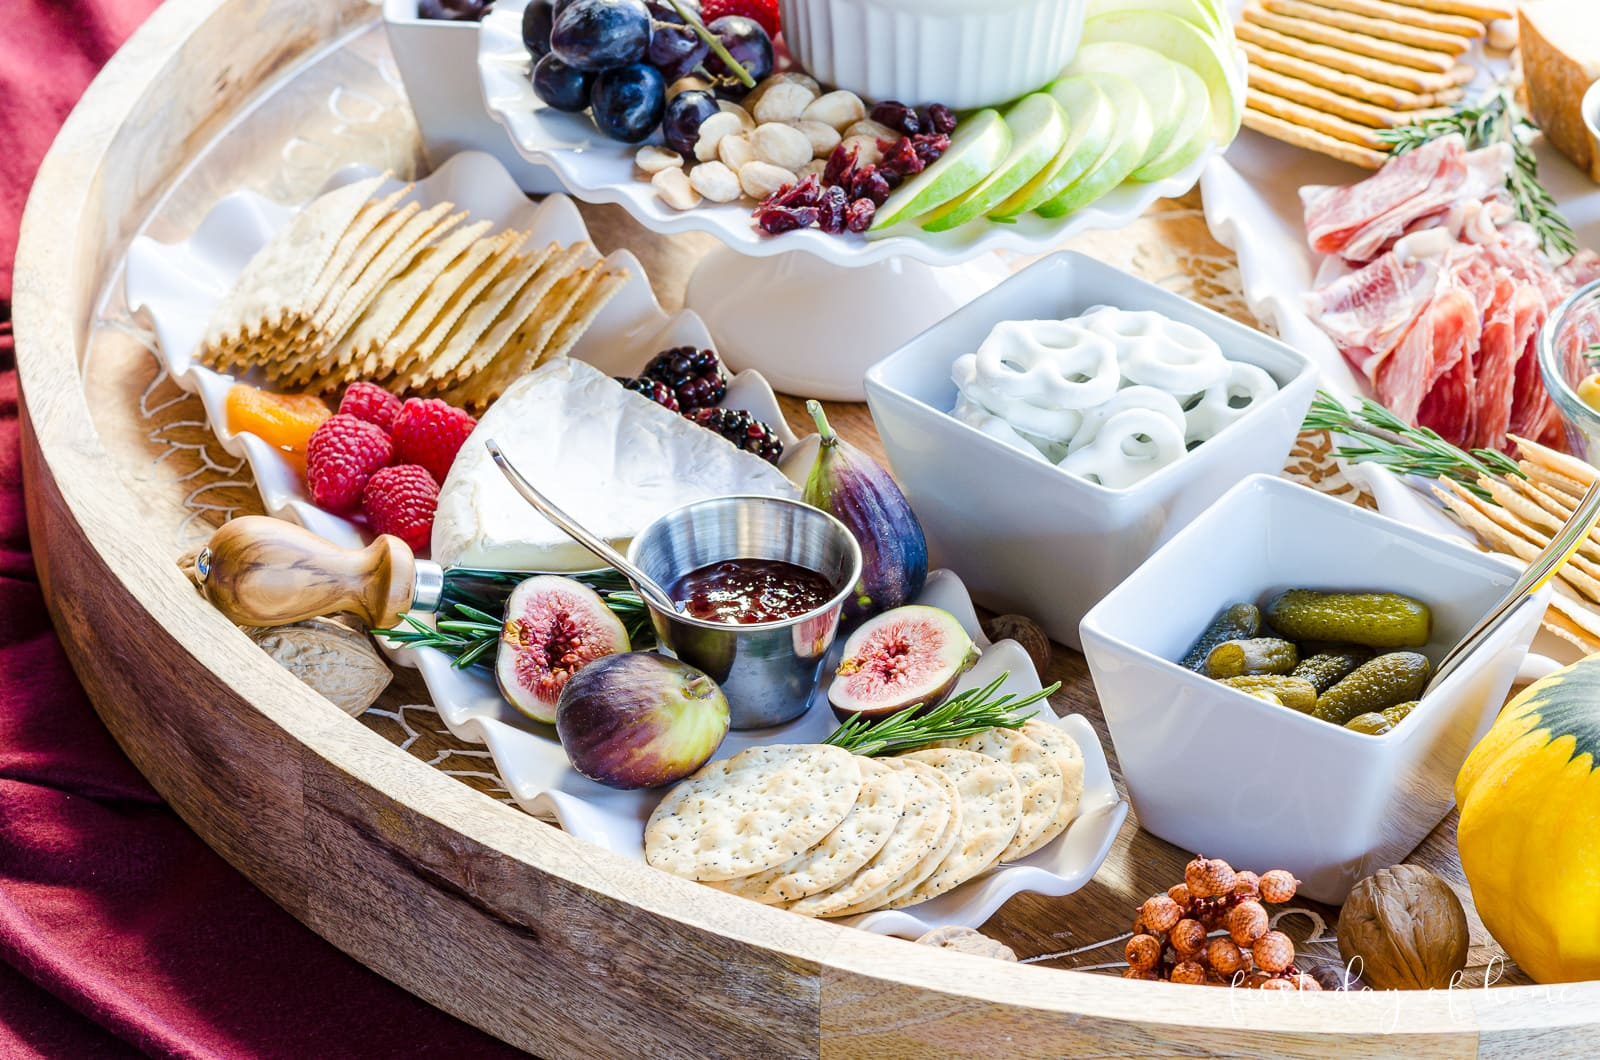 Charcuterie tray with brie, crackers, fig preserves, cornichons, pretzels and other fruit and crackers.